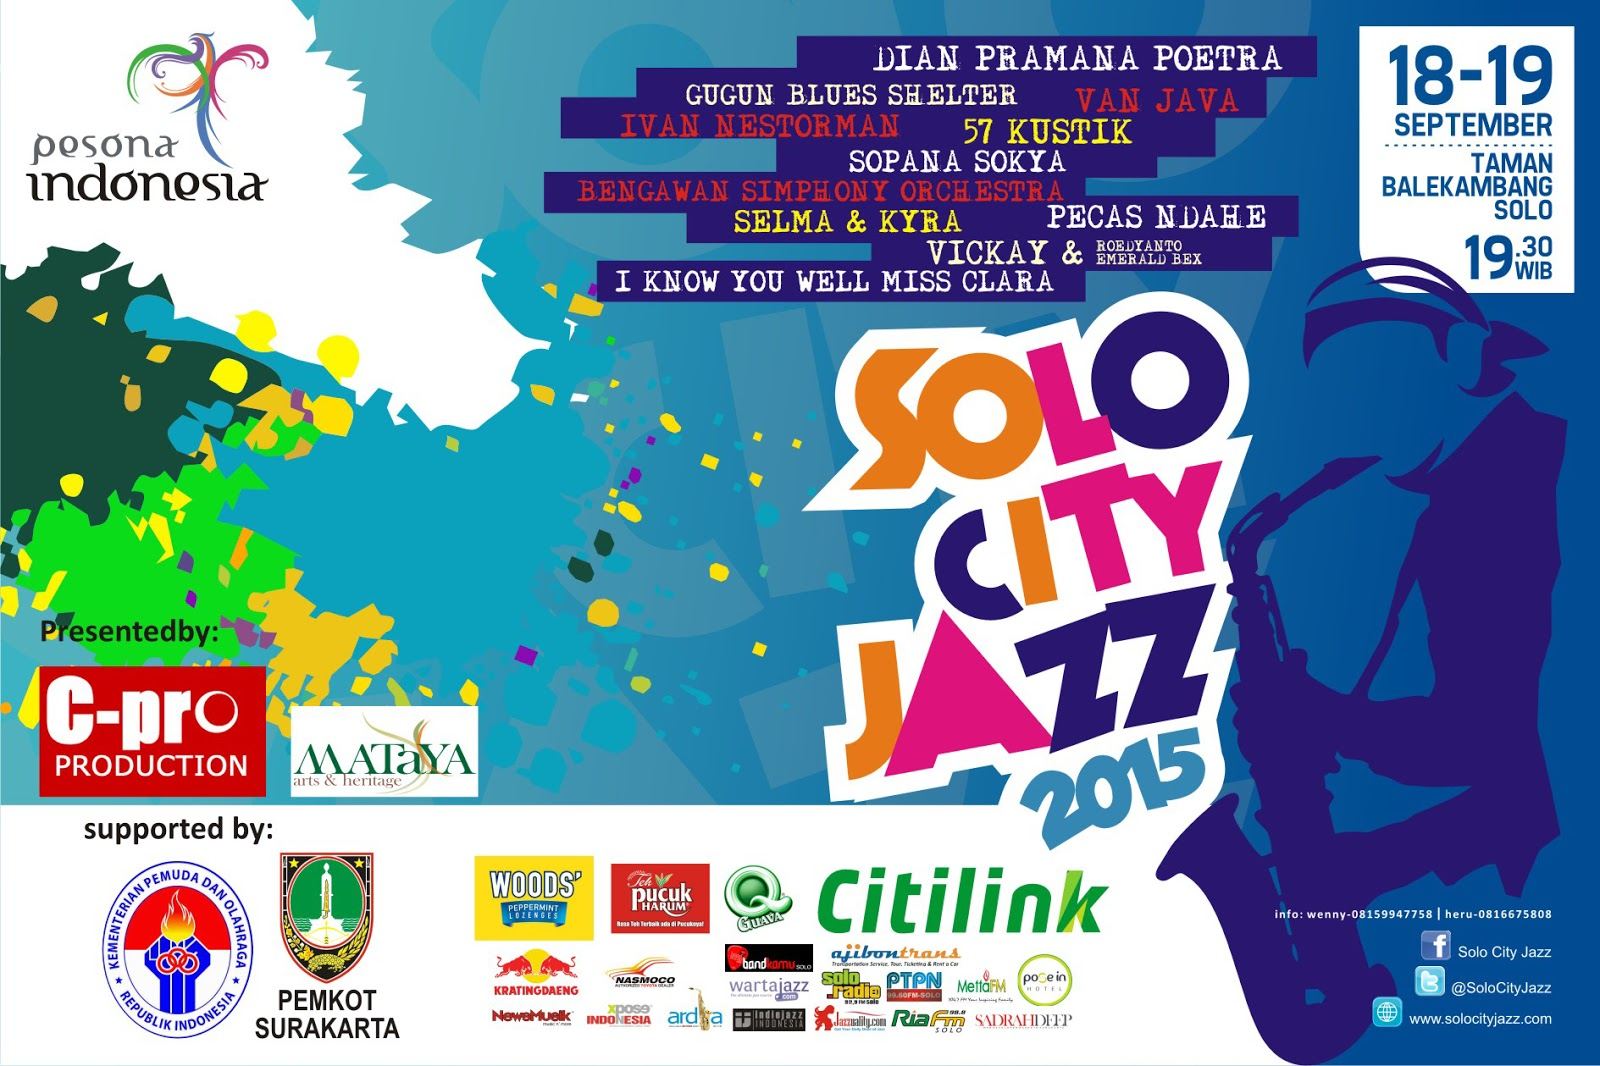 SOLO CITY JAZZ 2015